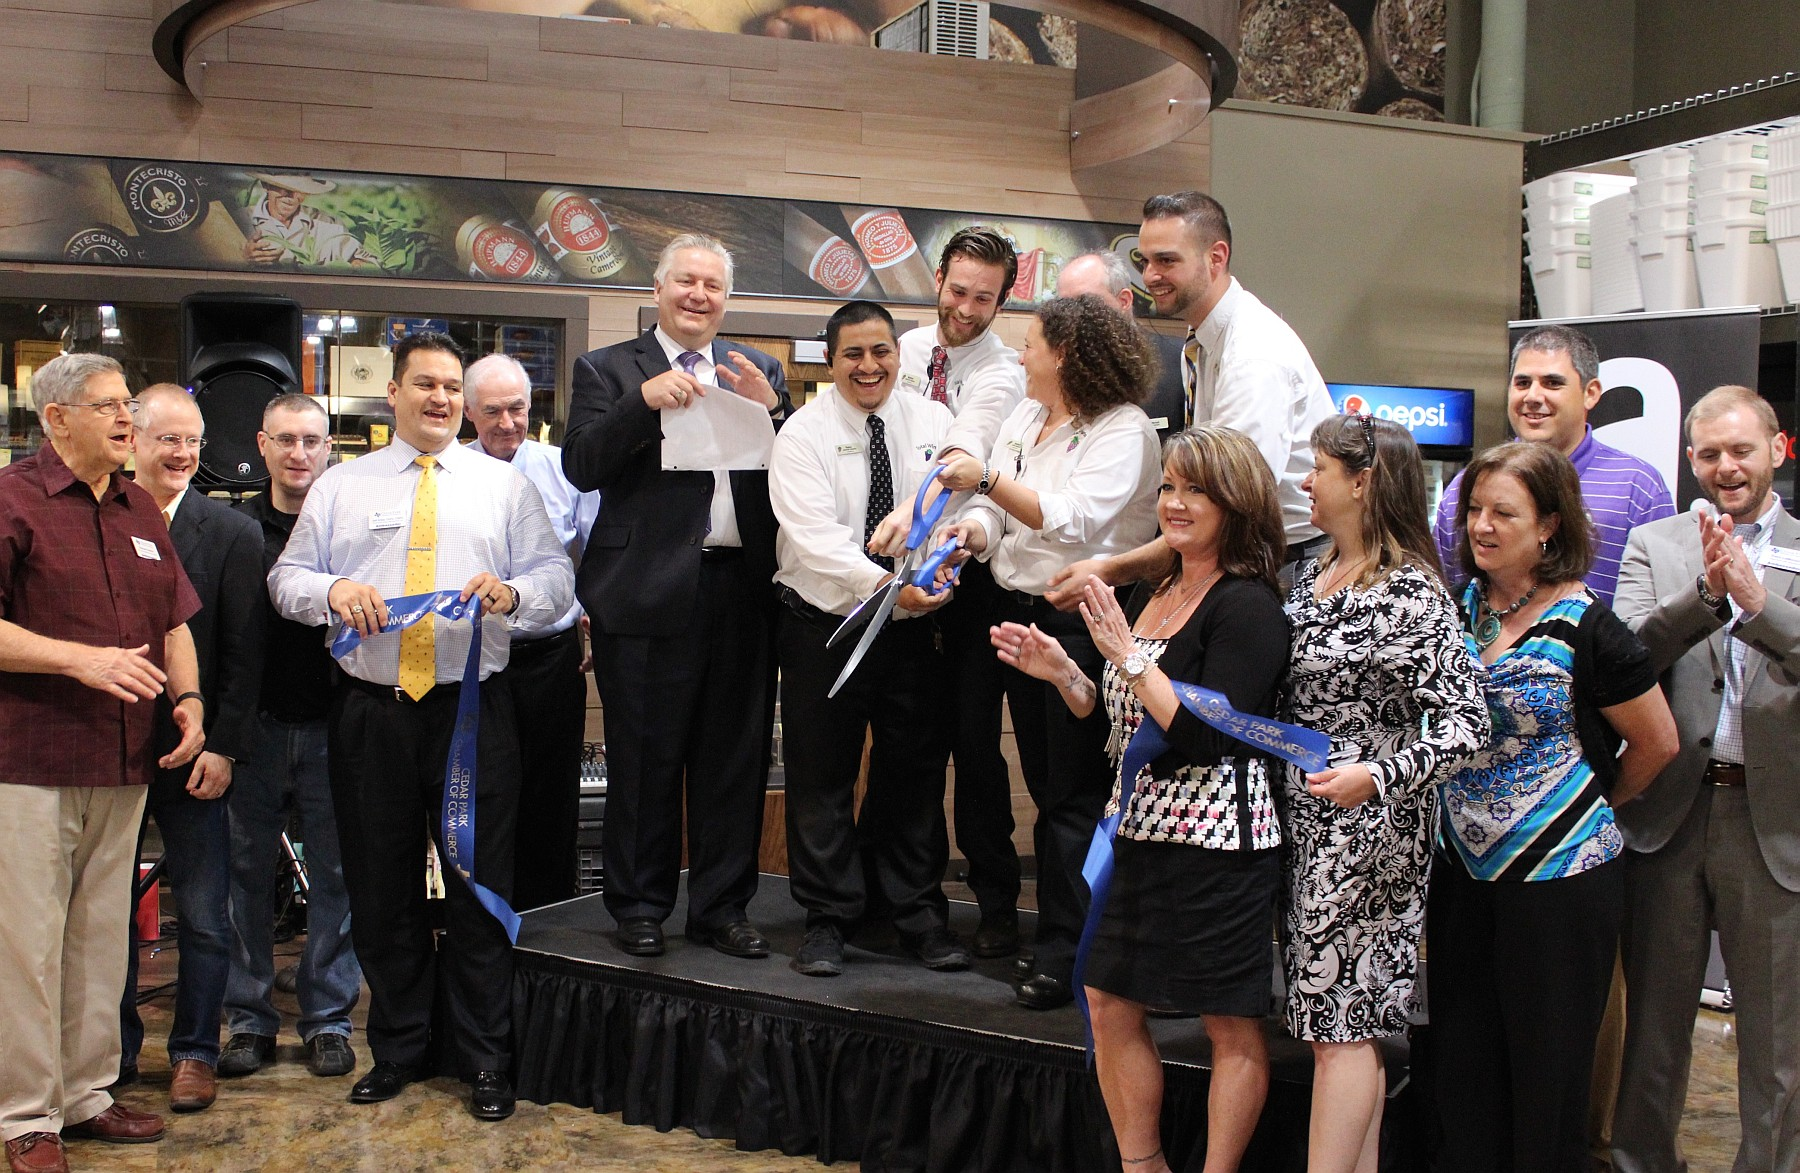 Total Wine ribbon cutting